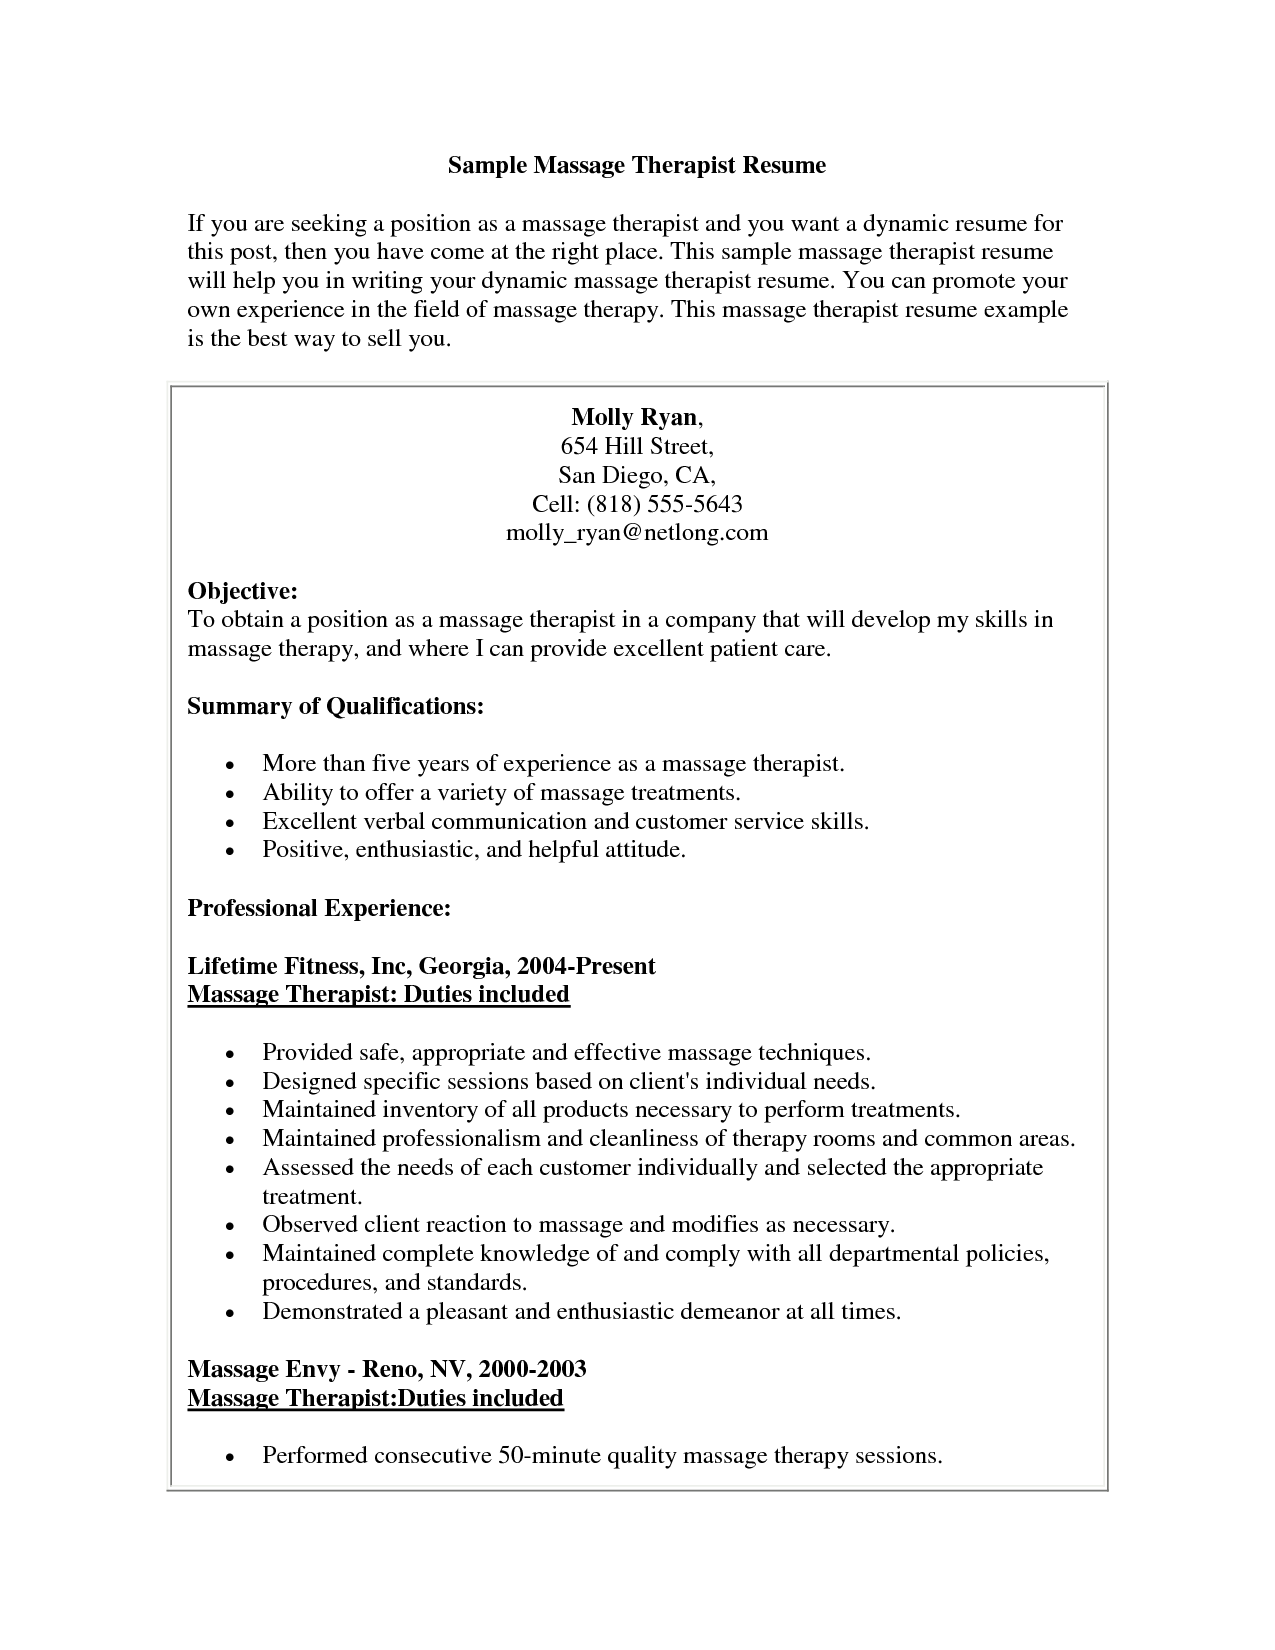 Massage Therapist Resume Sample Massage Therapist Resume Sample - Massage therapist resume template